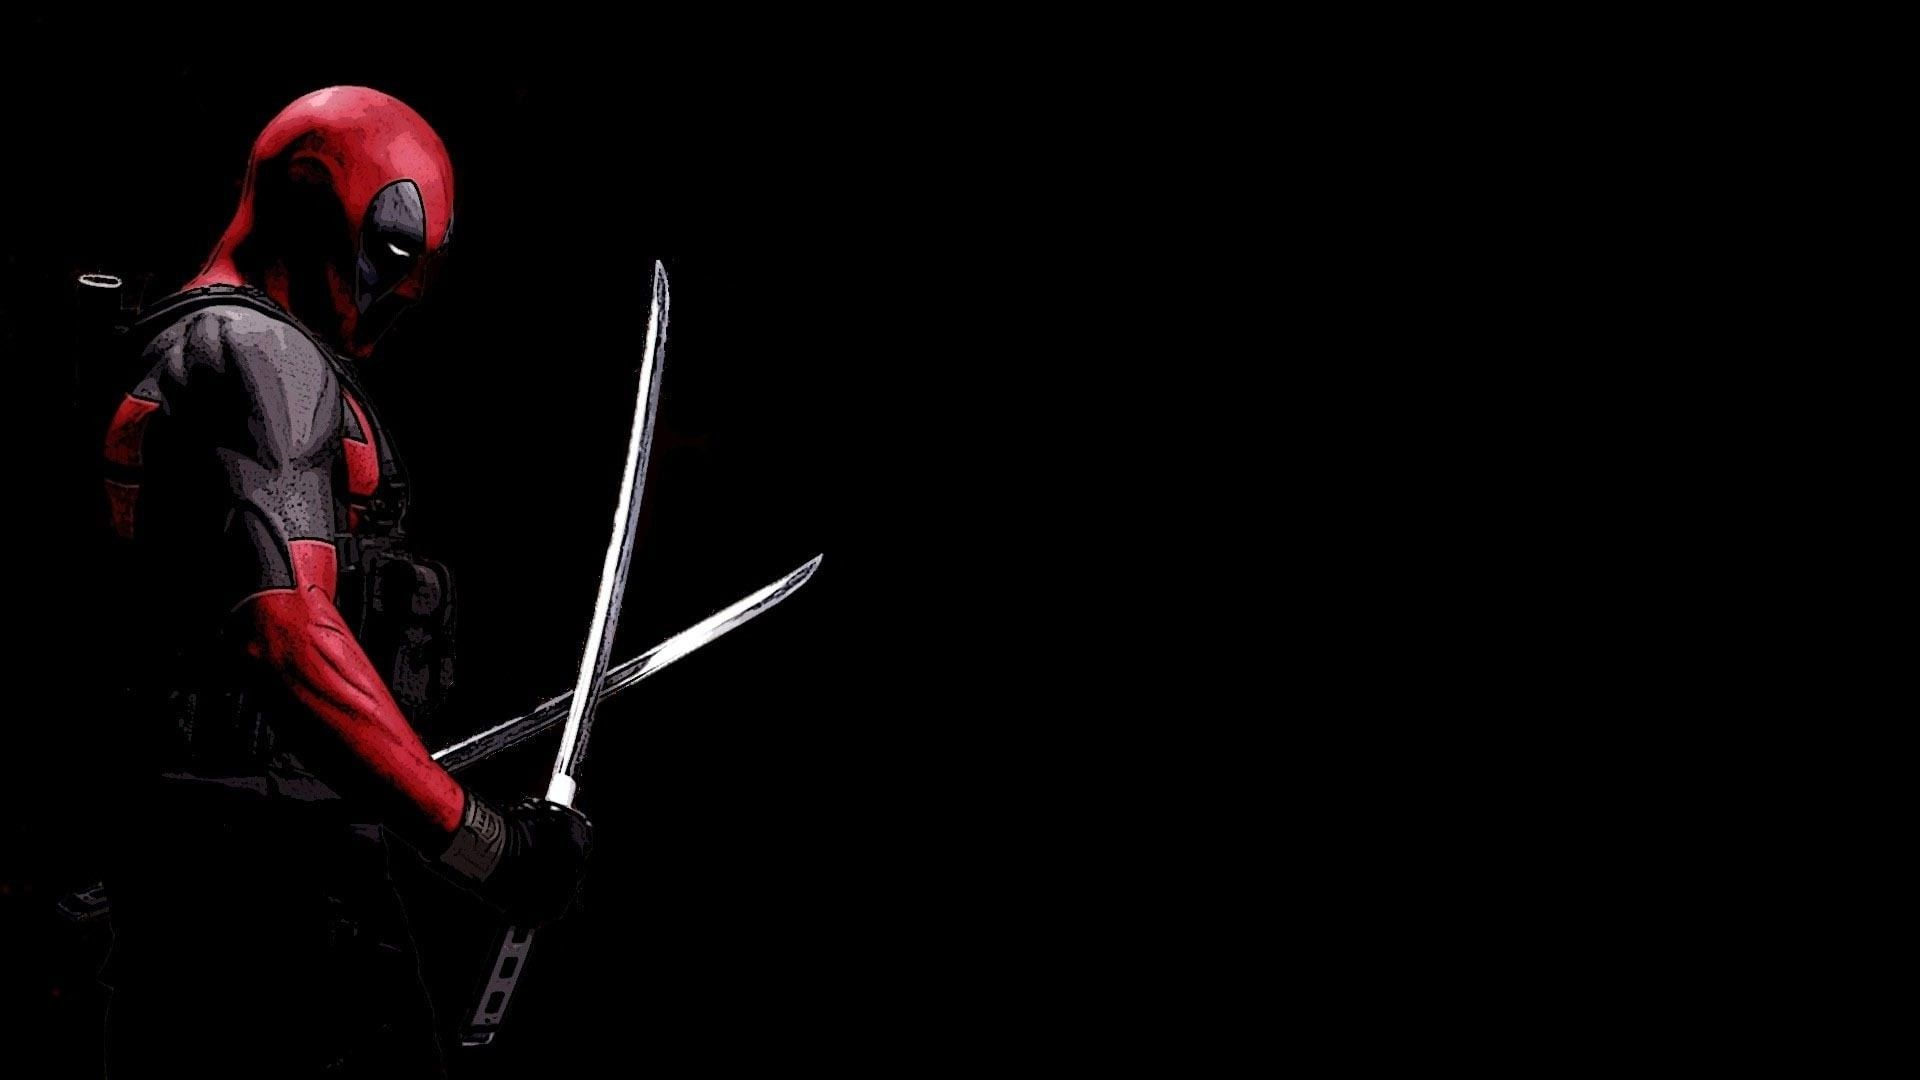 1920x1080 Black Deadpool Wallpapers Deadpool Wallpaper Desktop Deadpool Hd Wallpaper Ninja Wallpaper